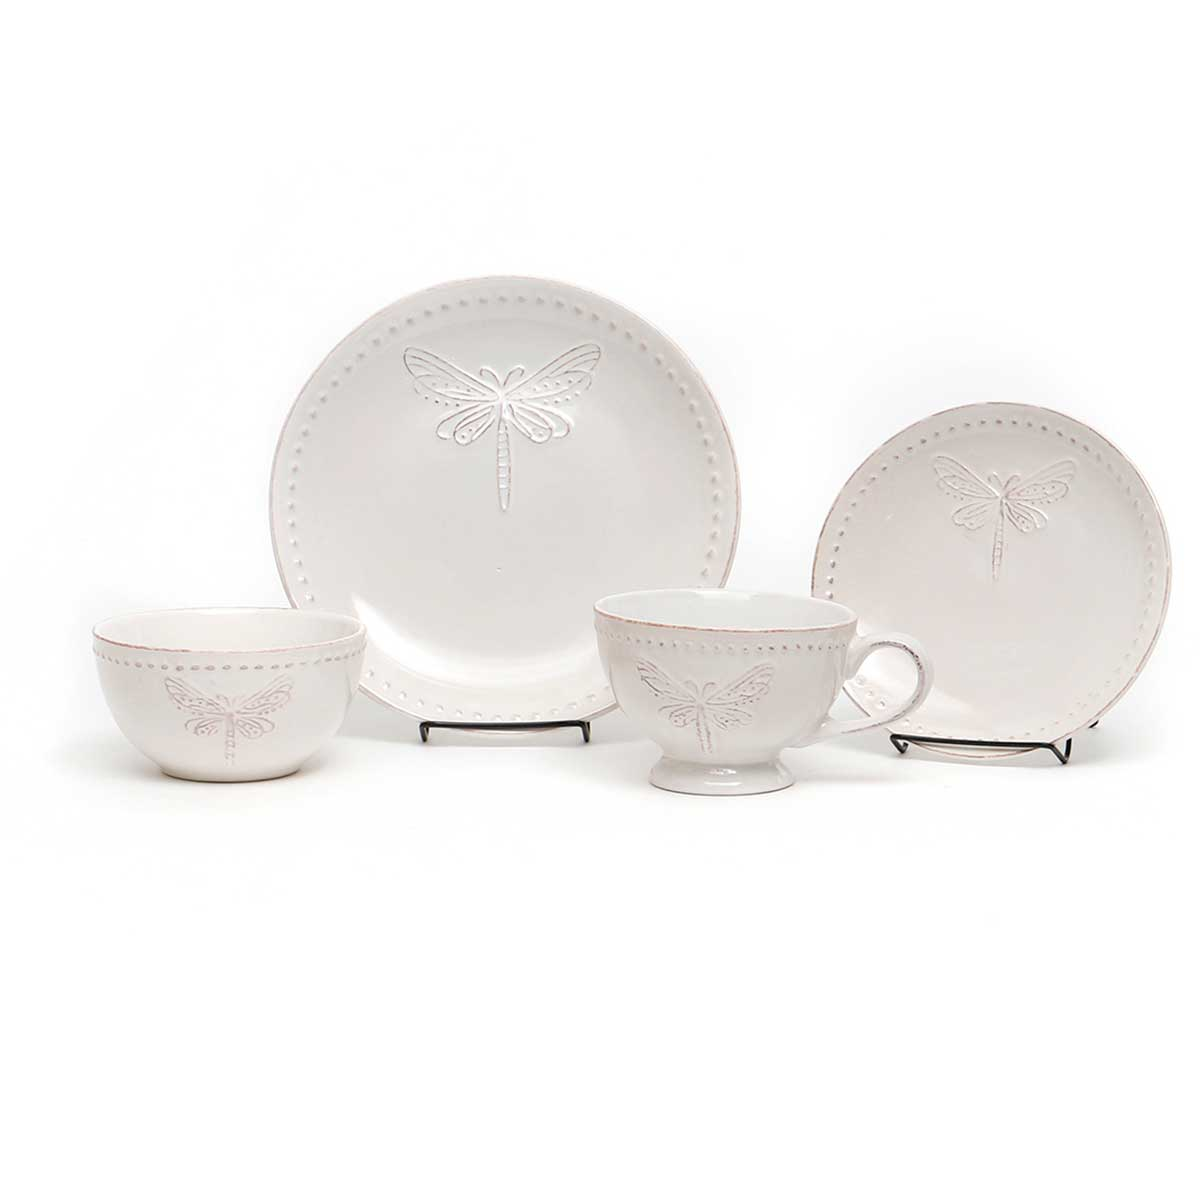 Dragonfly Dish Set of 4 pieces A2307 70sp